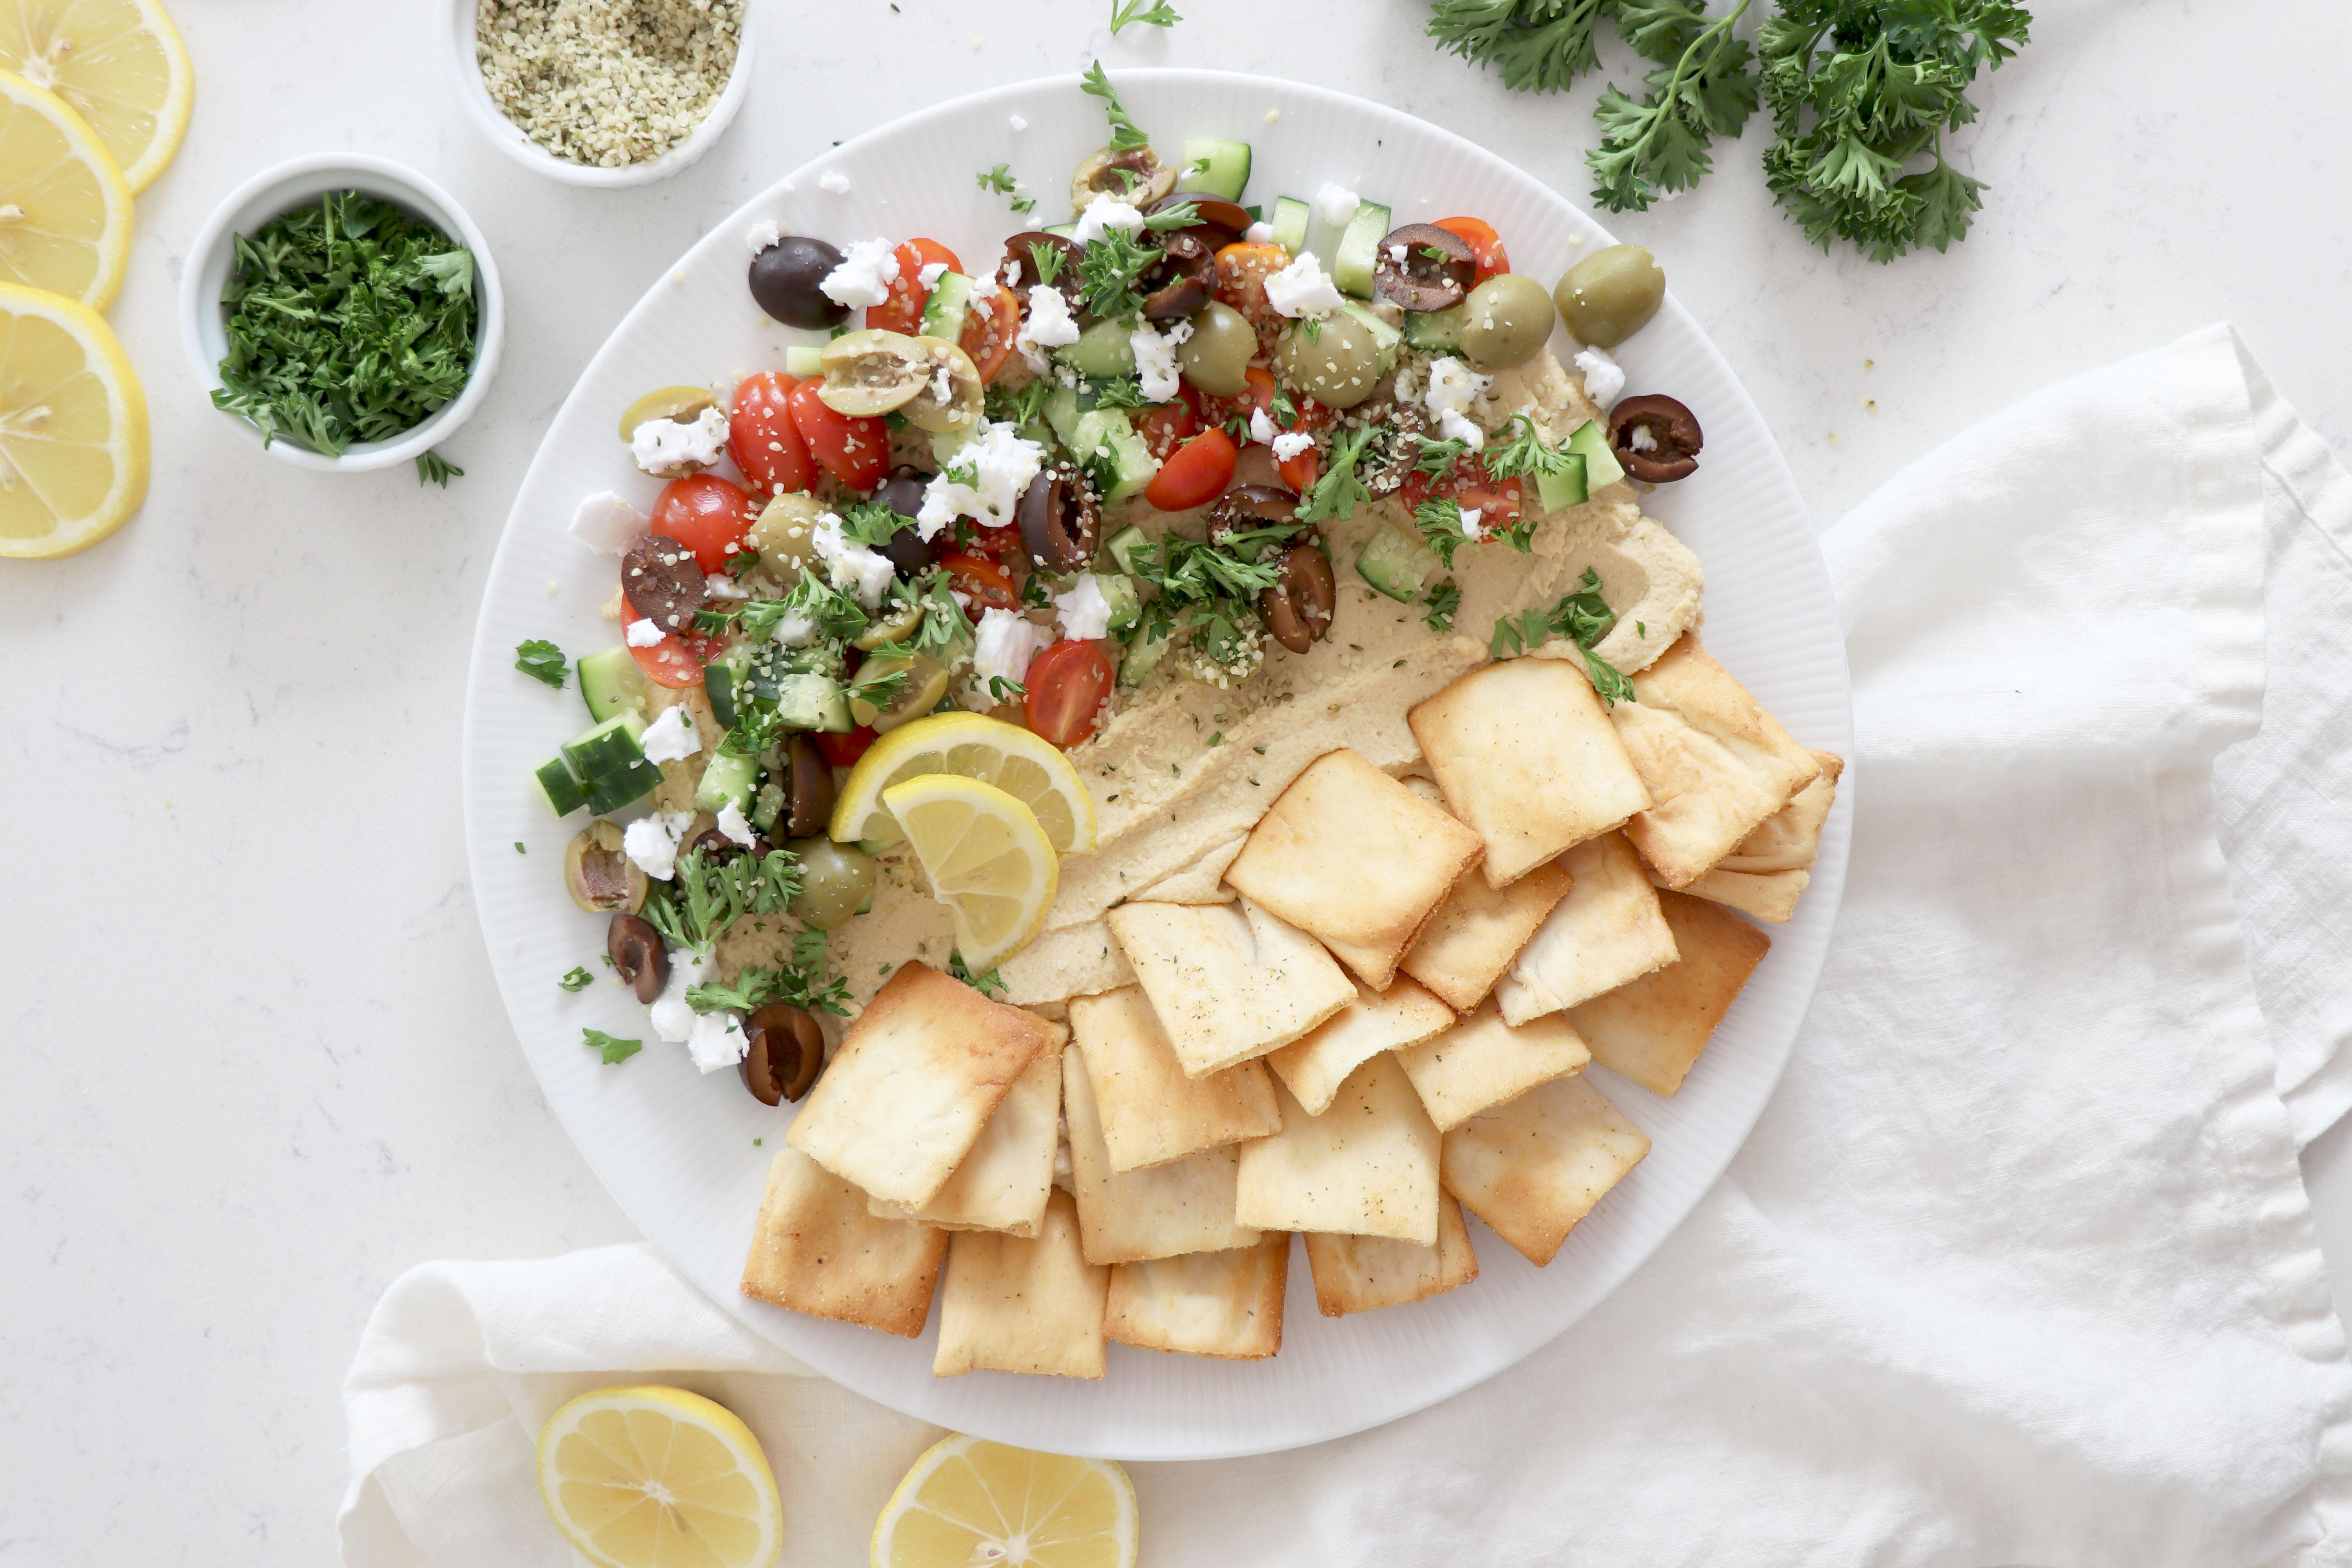 White plate with hummus, diced veggies and crackers. Surrounded by parsley and sliced lemon.